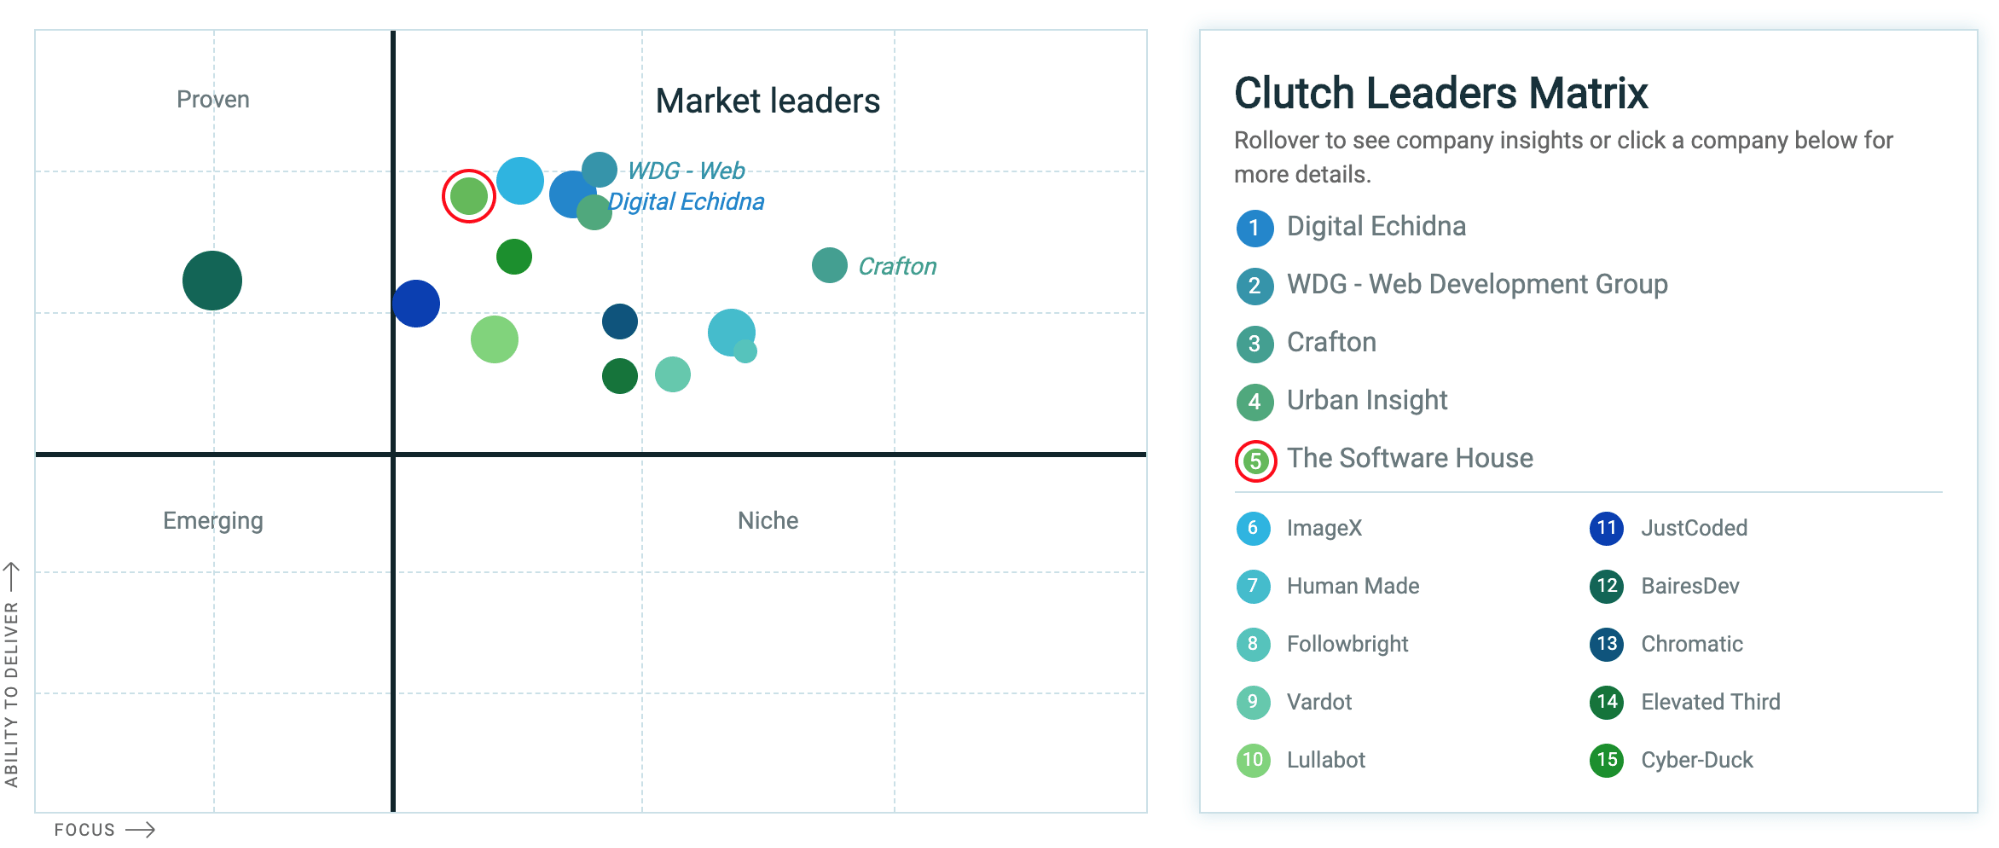 A screenshot showing Clutch market leaders matrix.